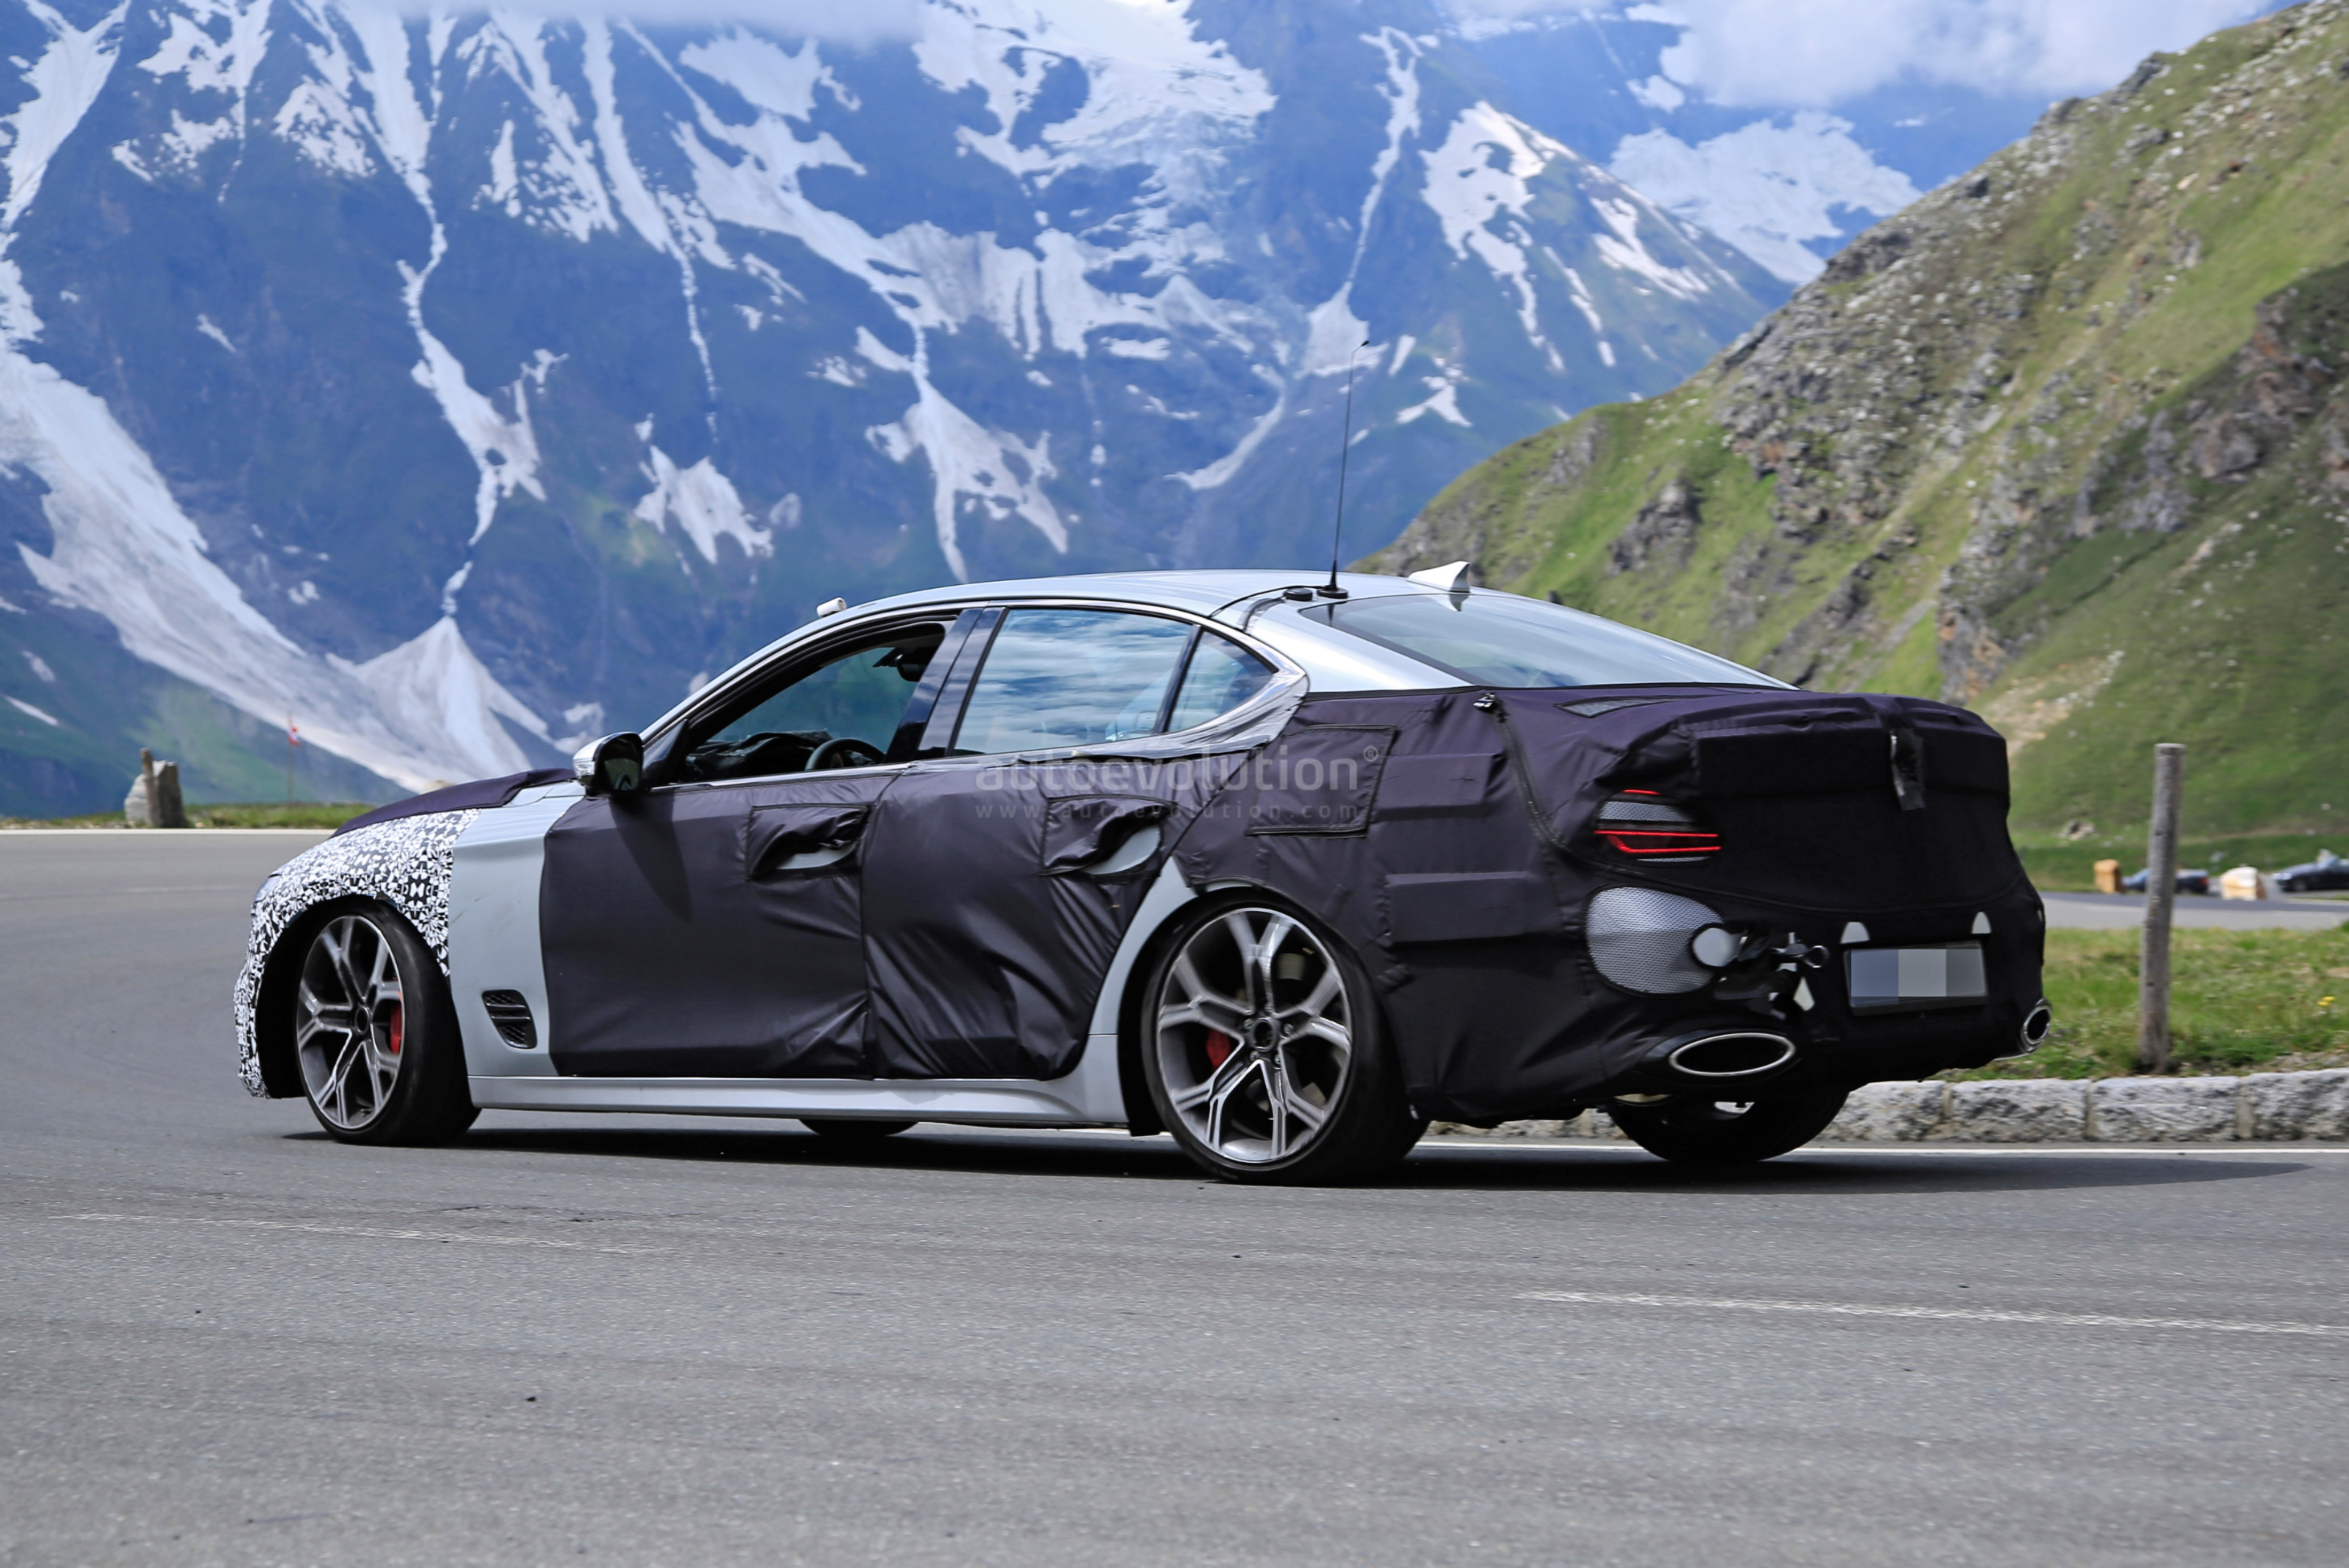 2021 Genesis G70 Facelift Photographed With Kia Stinger ...